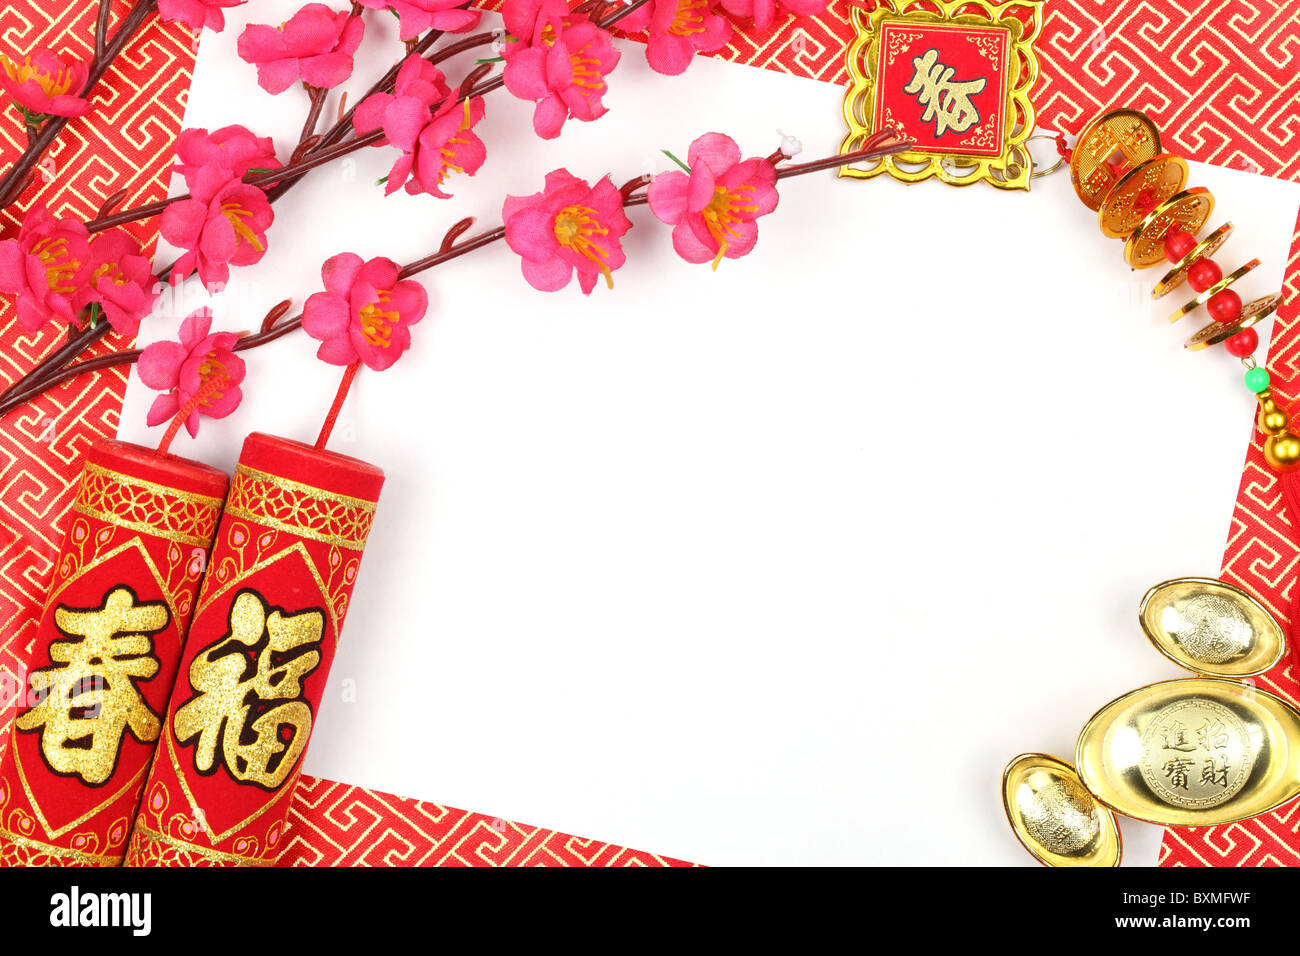 Chinese New Year Festival Stock Photos & Chinese New Year Festival ...